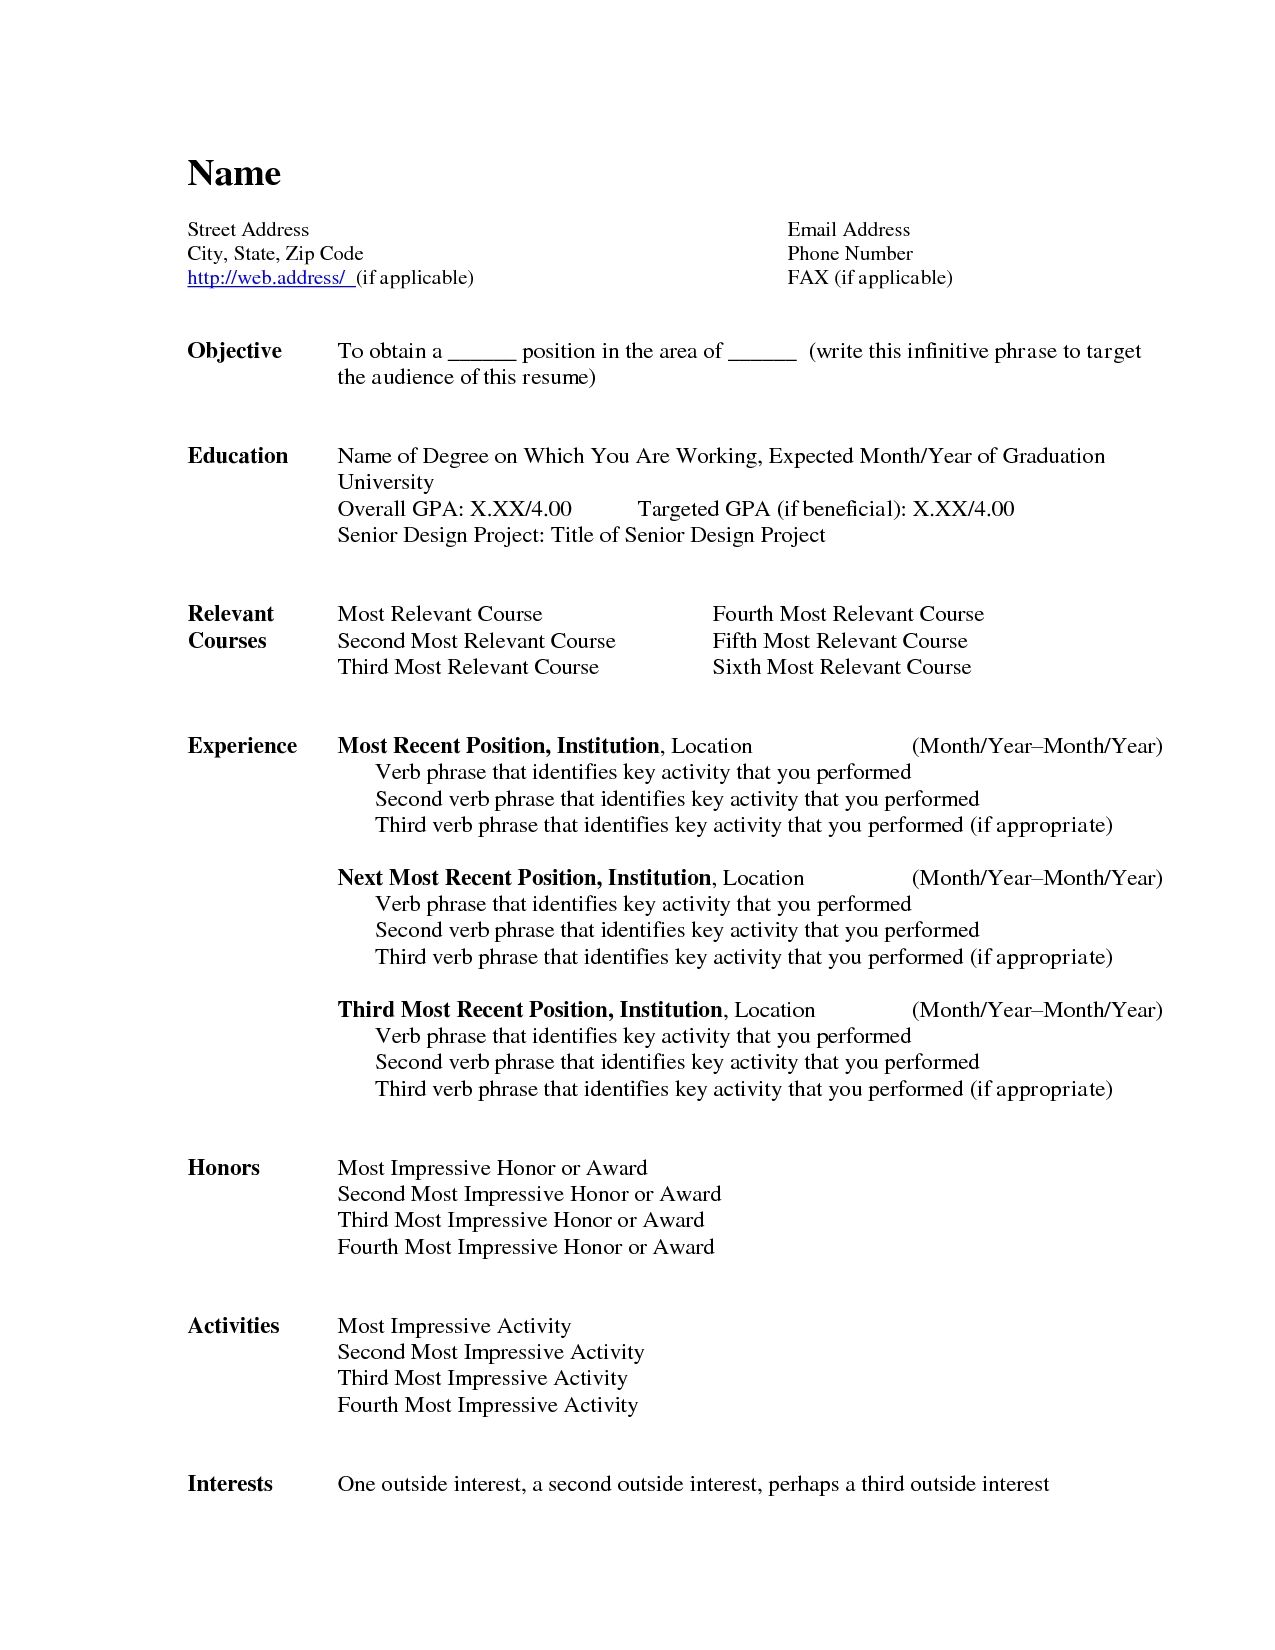 Template Of Resume Photo Ms Word Resume Format Images The Ms Word Resume Format